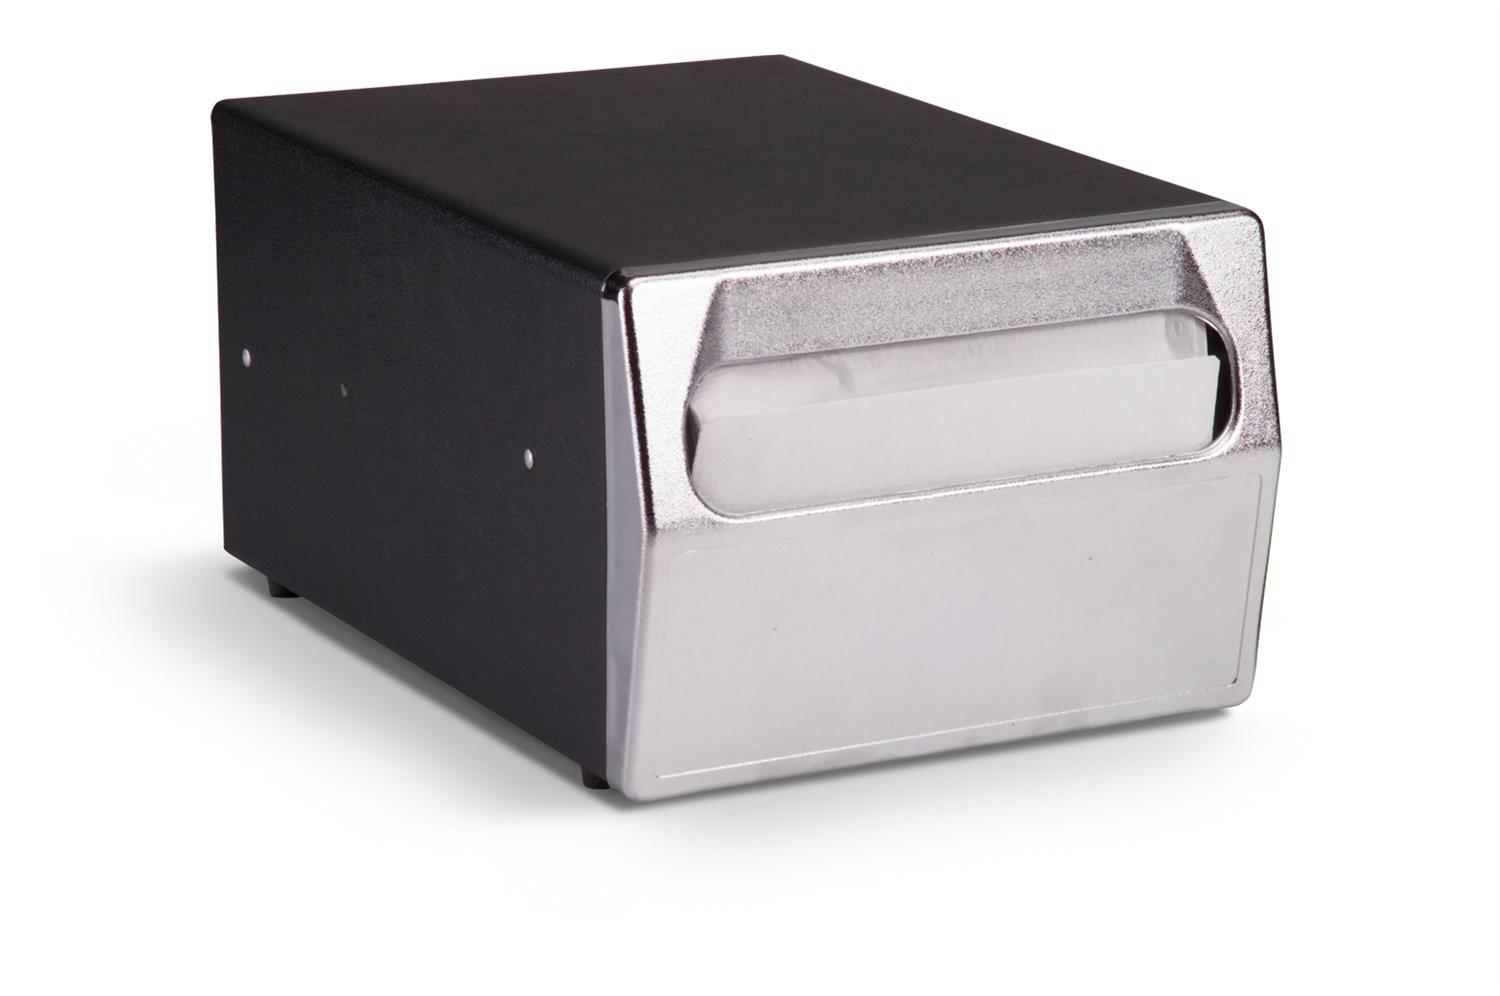 Vollrath 6512-06 One-Sided Countertop Napkin Dispenser